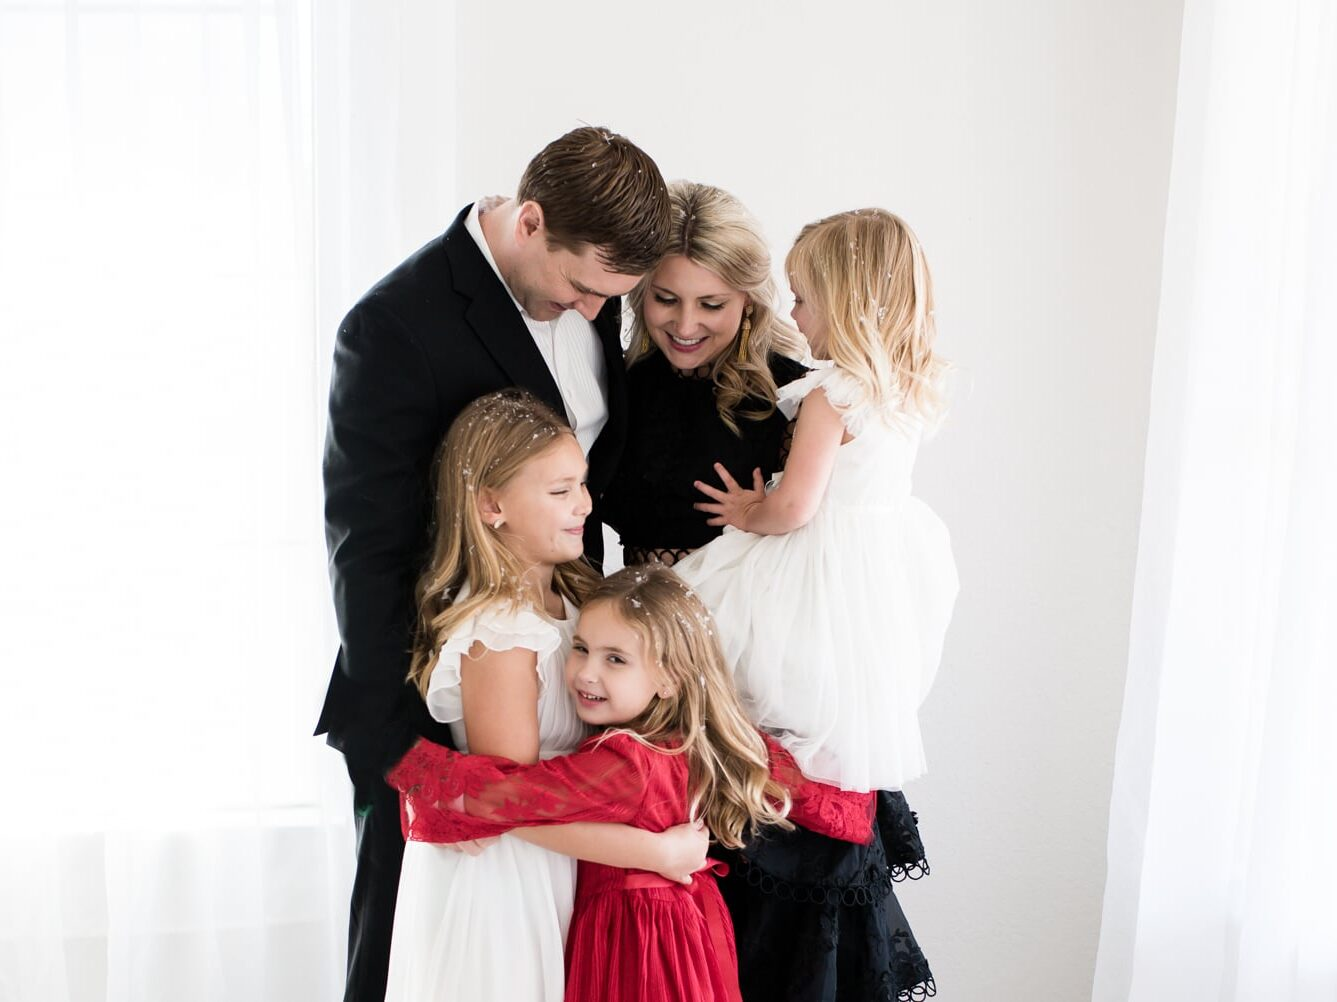 Christmas card ideas that show a family covered in faux snow | The Dating Divas